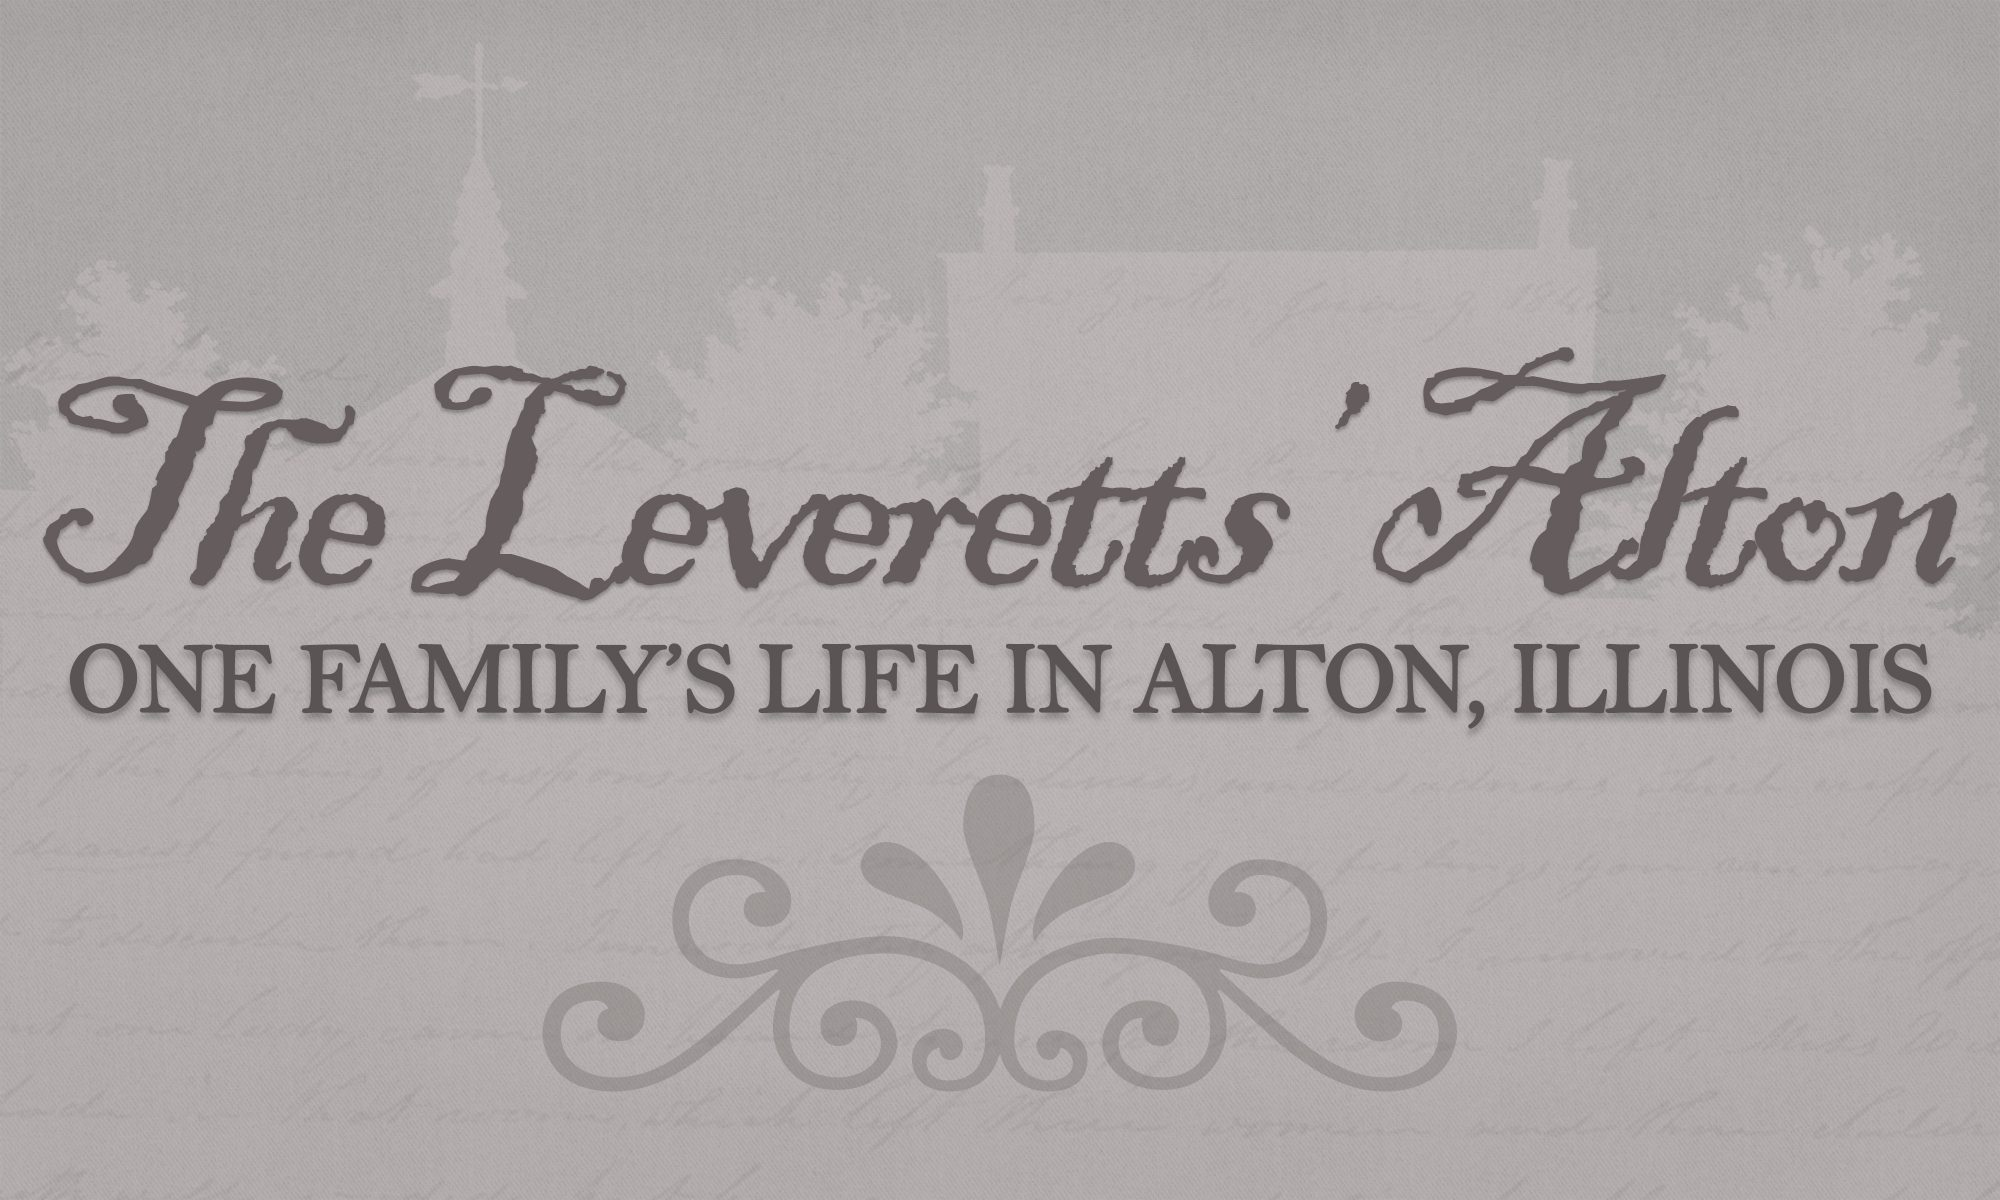 The Leveretts' Alton: One Family's Life in Alton, Illinois